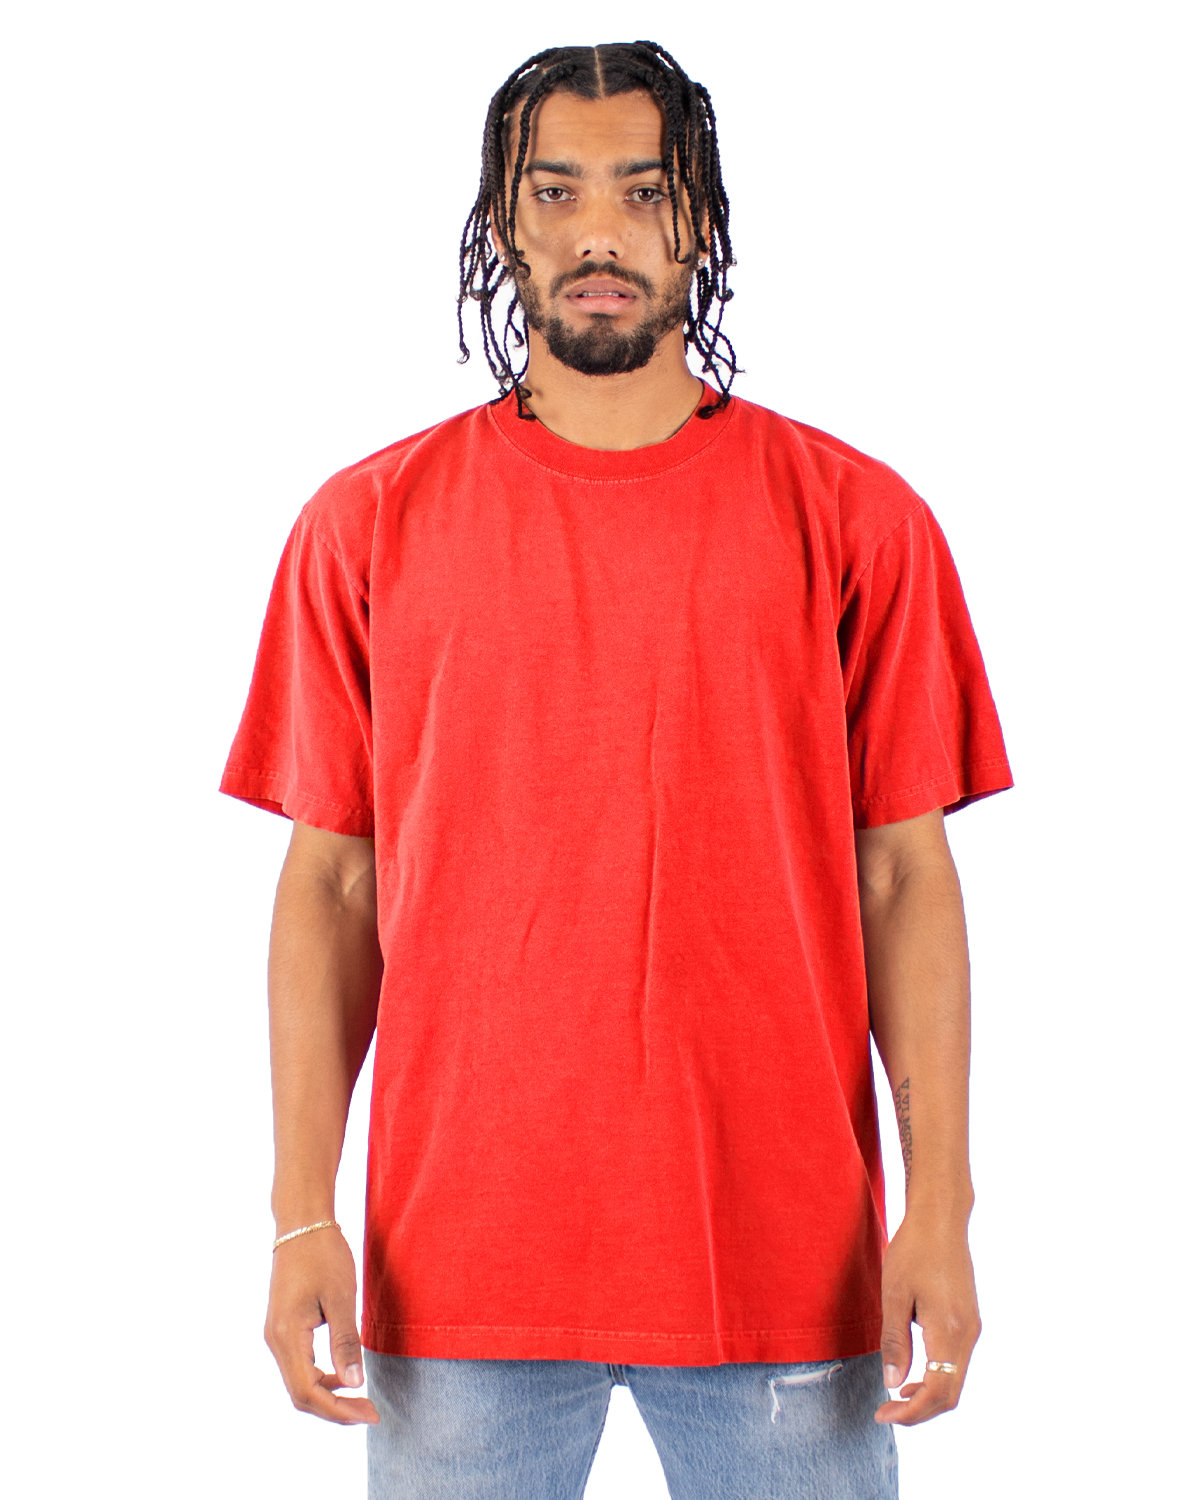 Shaka Wear Drop Ship Garment-Dyed Crewneck T-Shirt CHERRY TOMATO